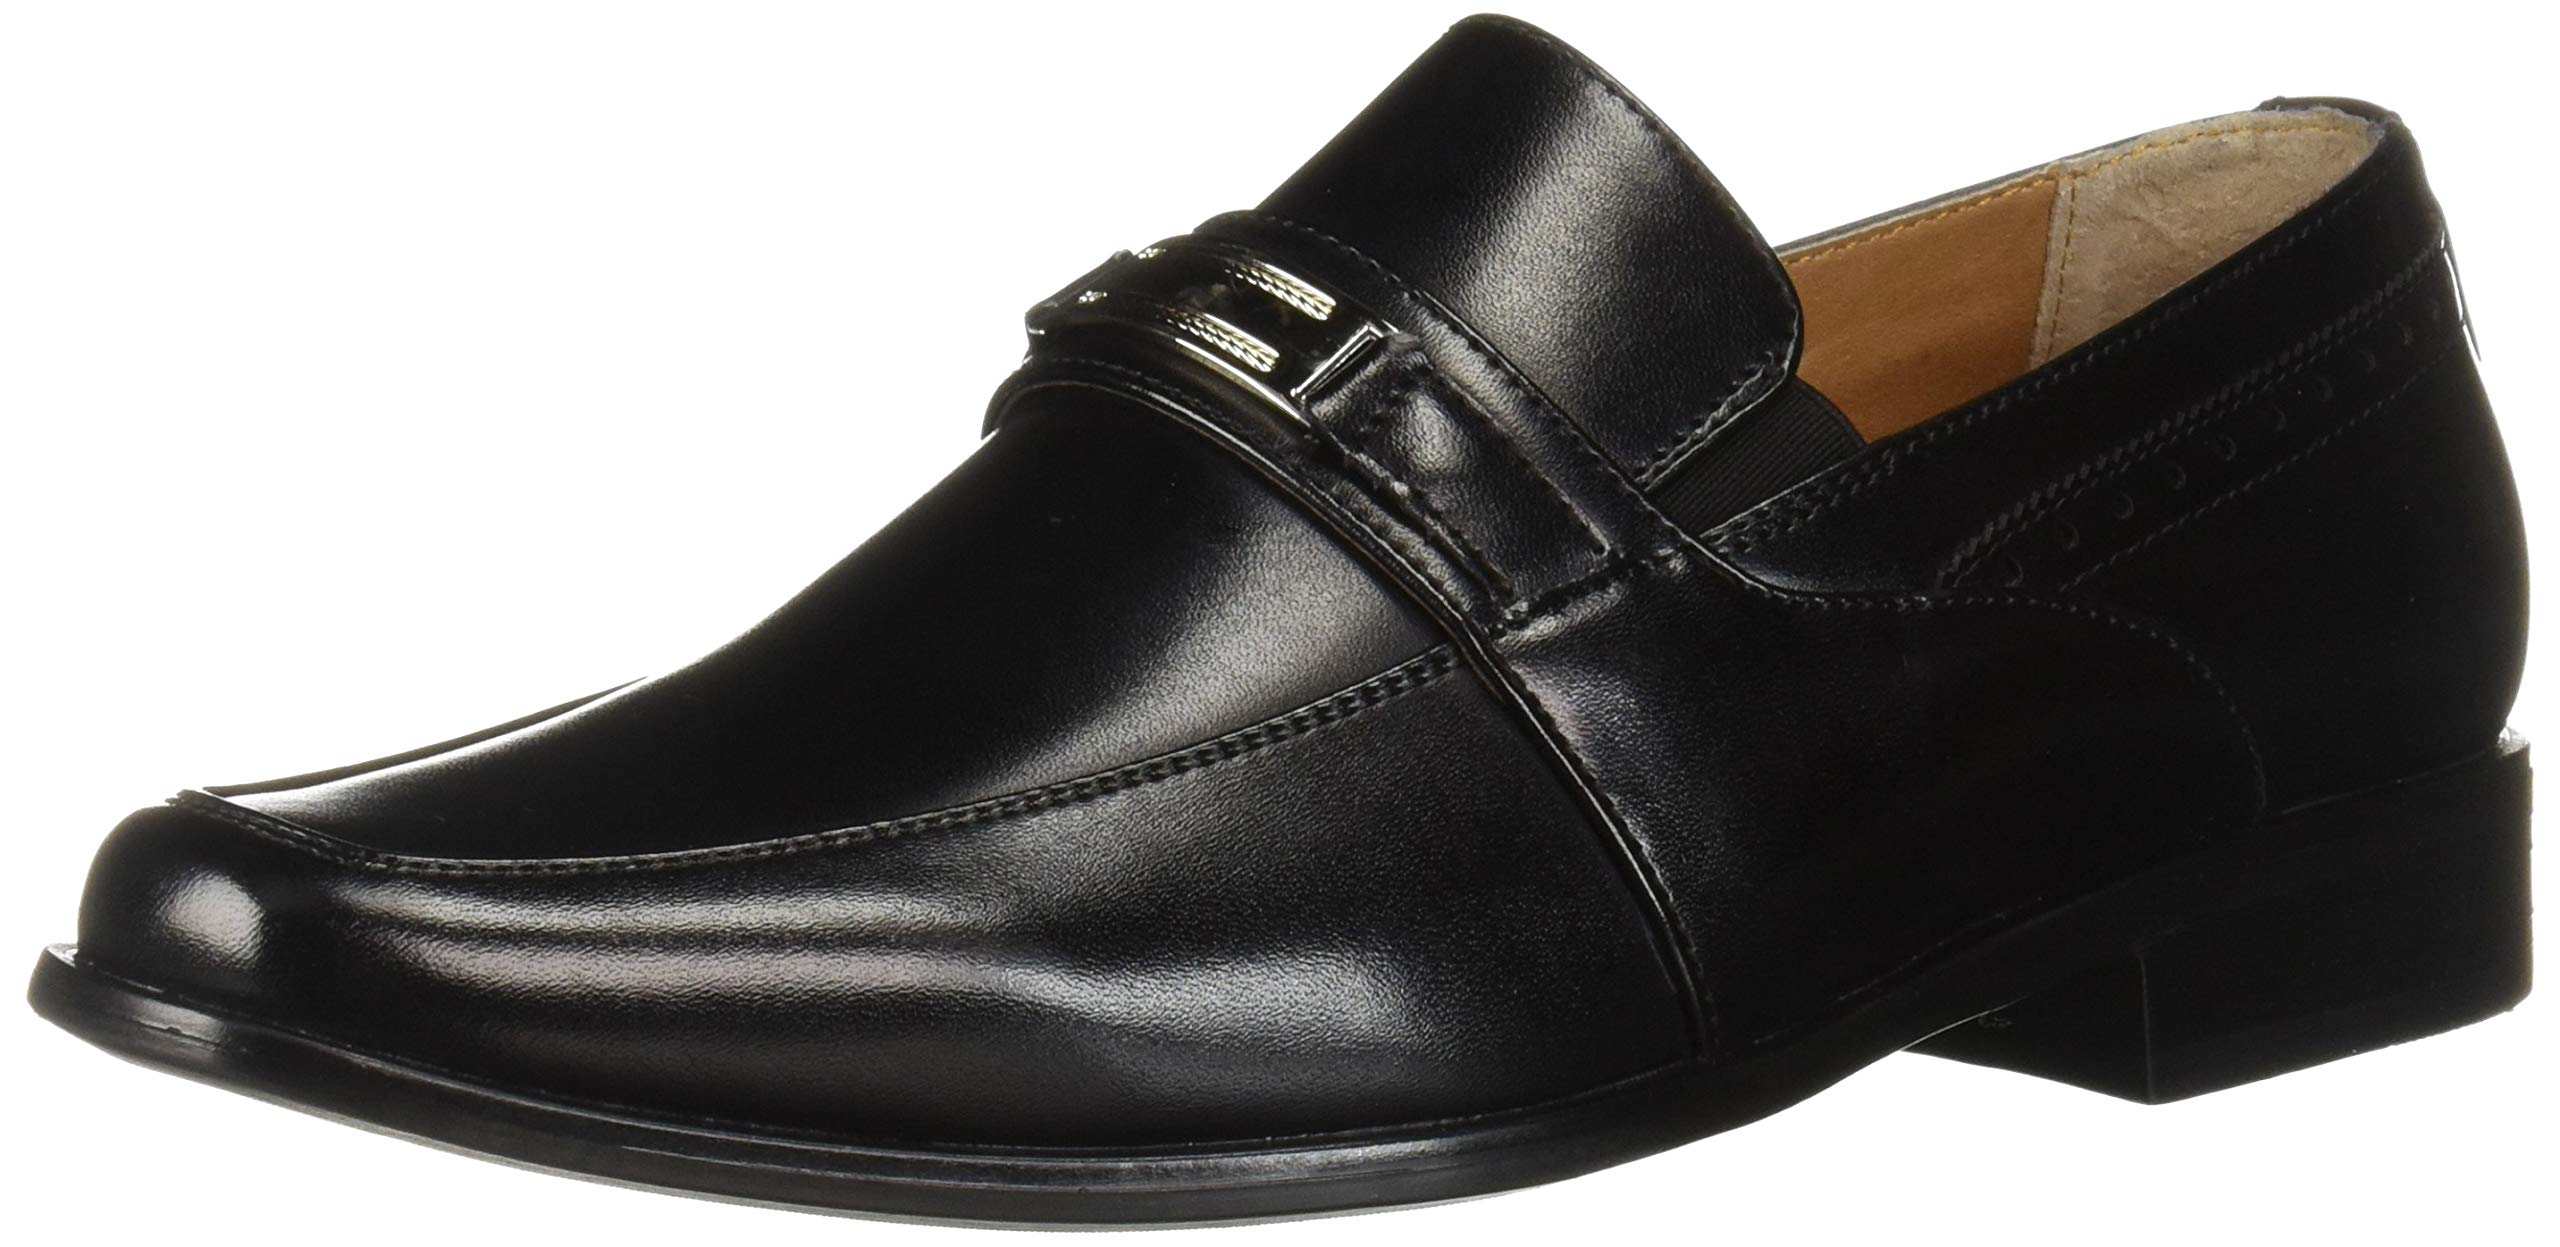 STACY ADAMS Unisex Shaw Moc Toe Bit Slip On Penny Loafer, Black 2.5 M US Big Kid